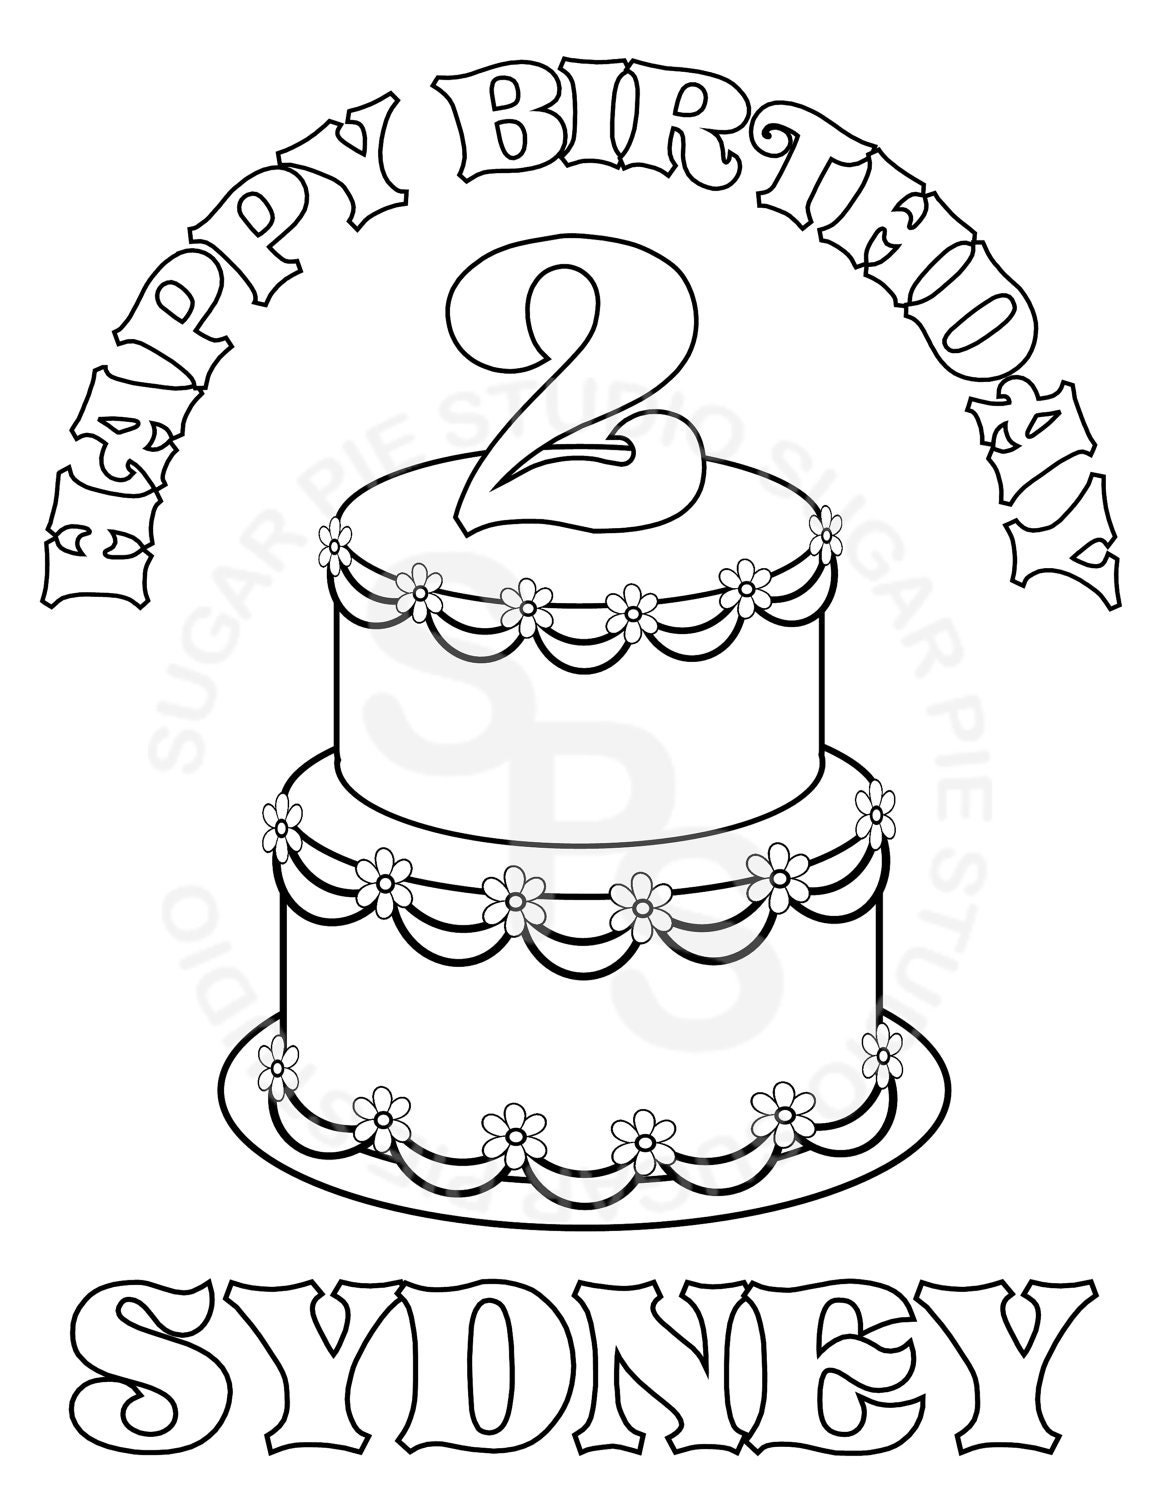 personalized birthday coloring pages | Personalized Printable Birthday Cake Party Favor childrens